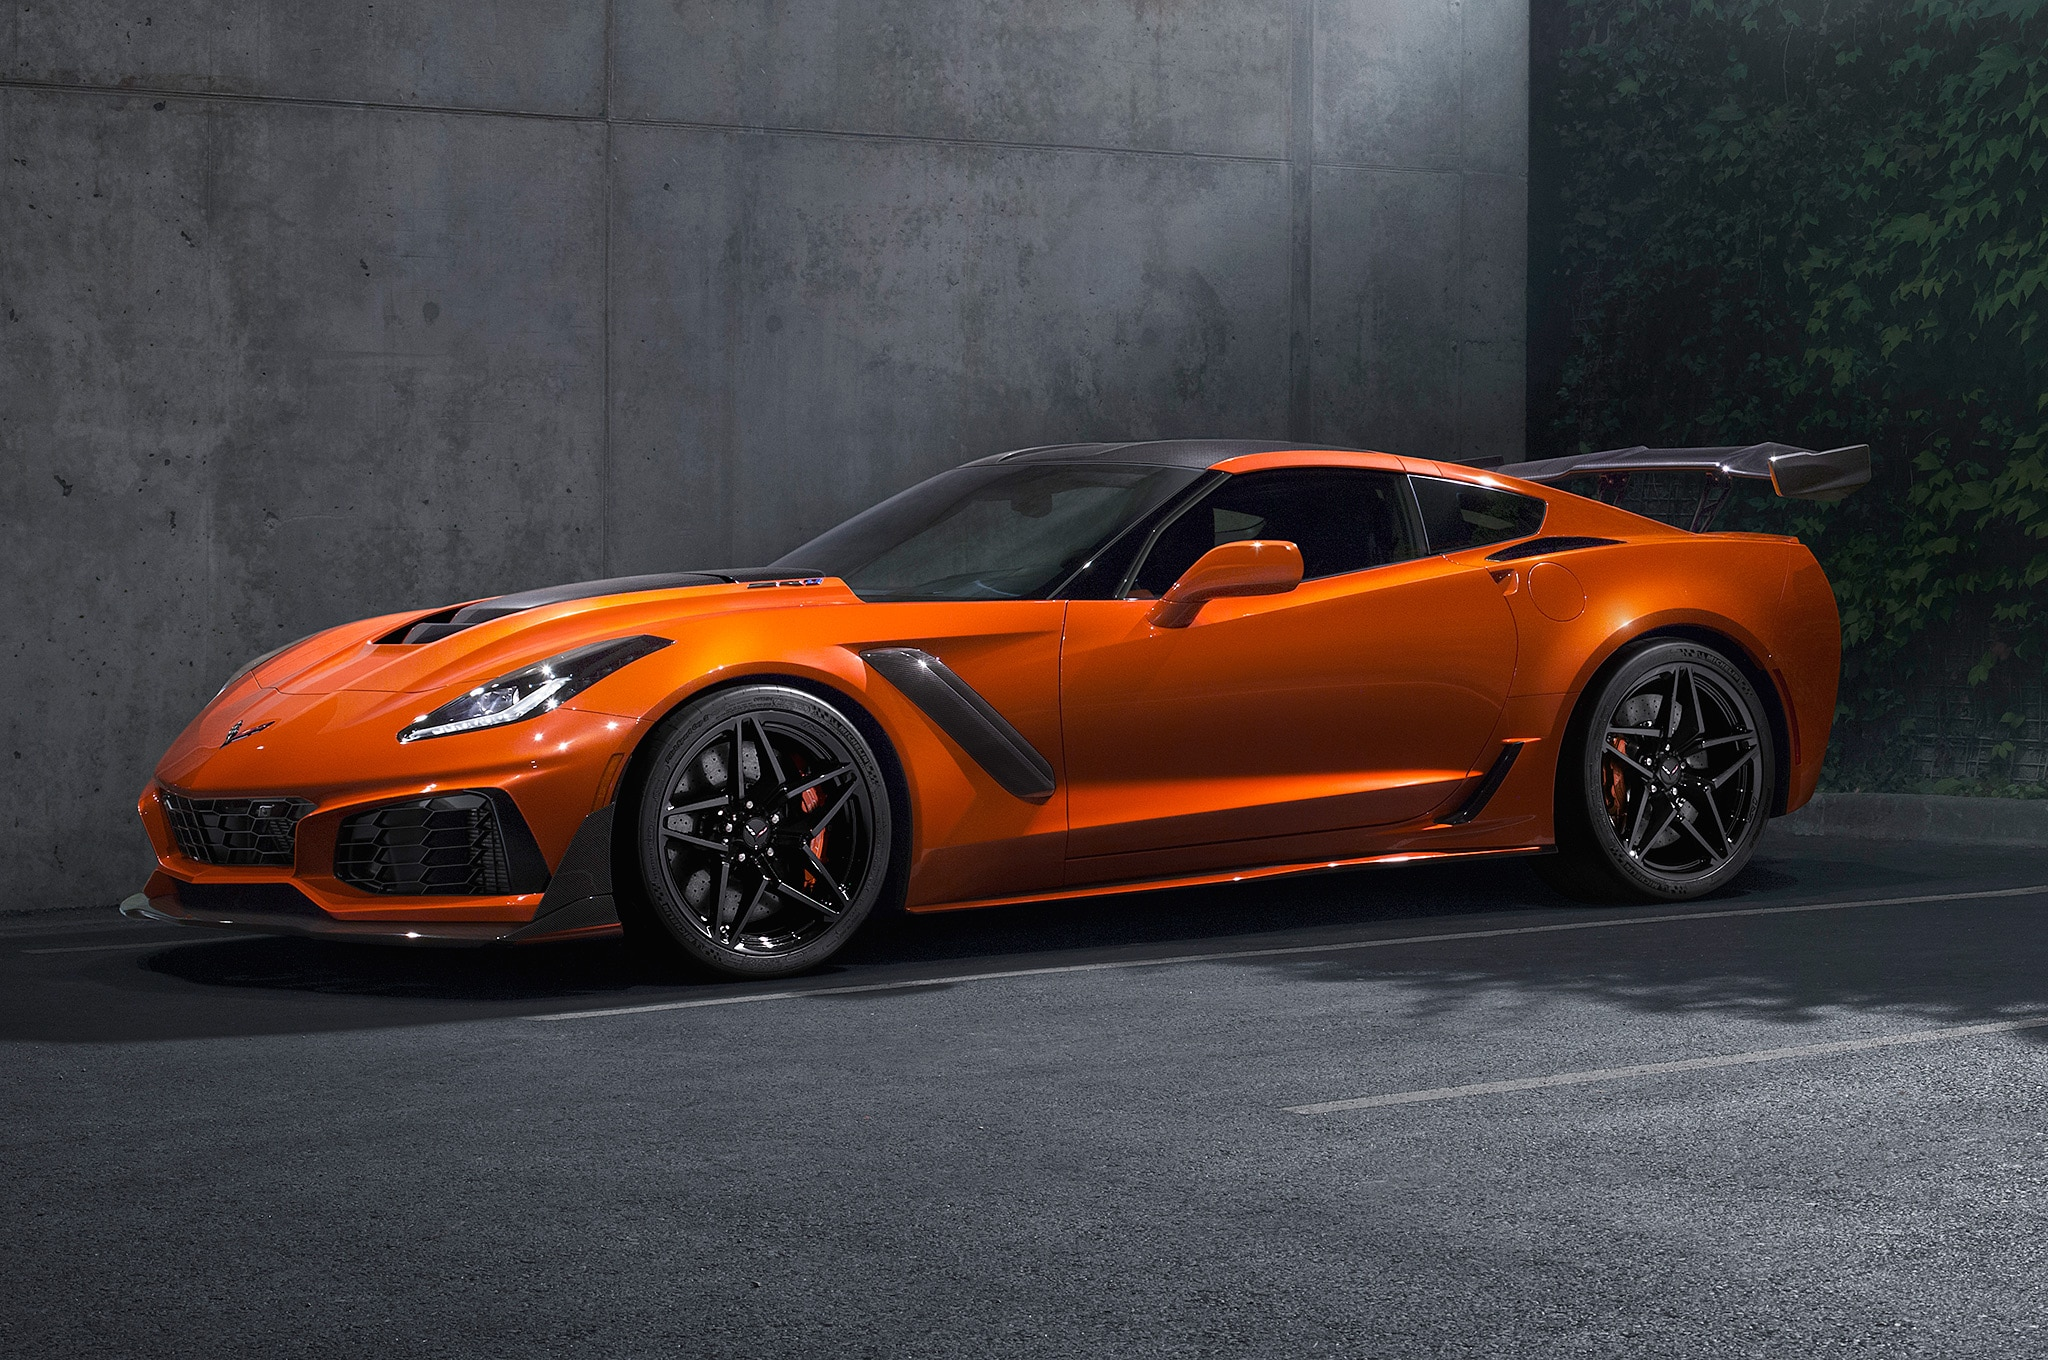 Chevrolet Corvette ZR1 is the fastest, most powerful 'Vette yet